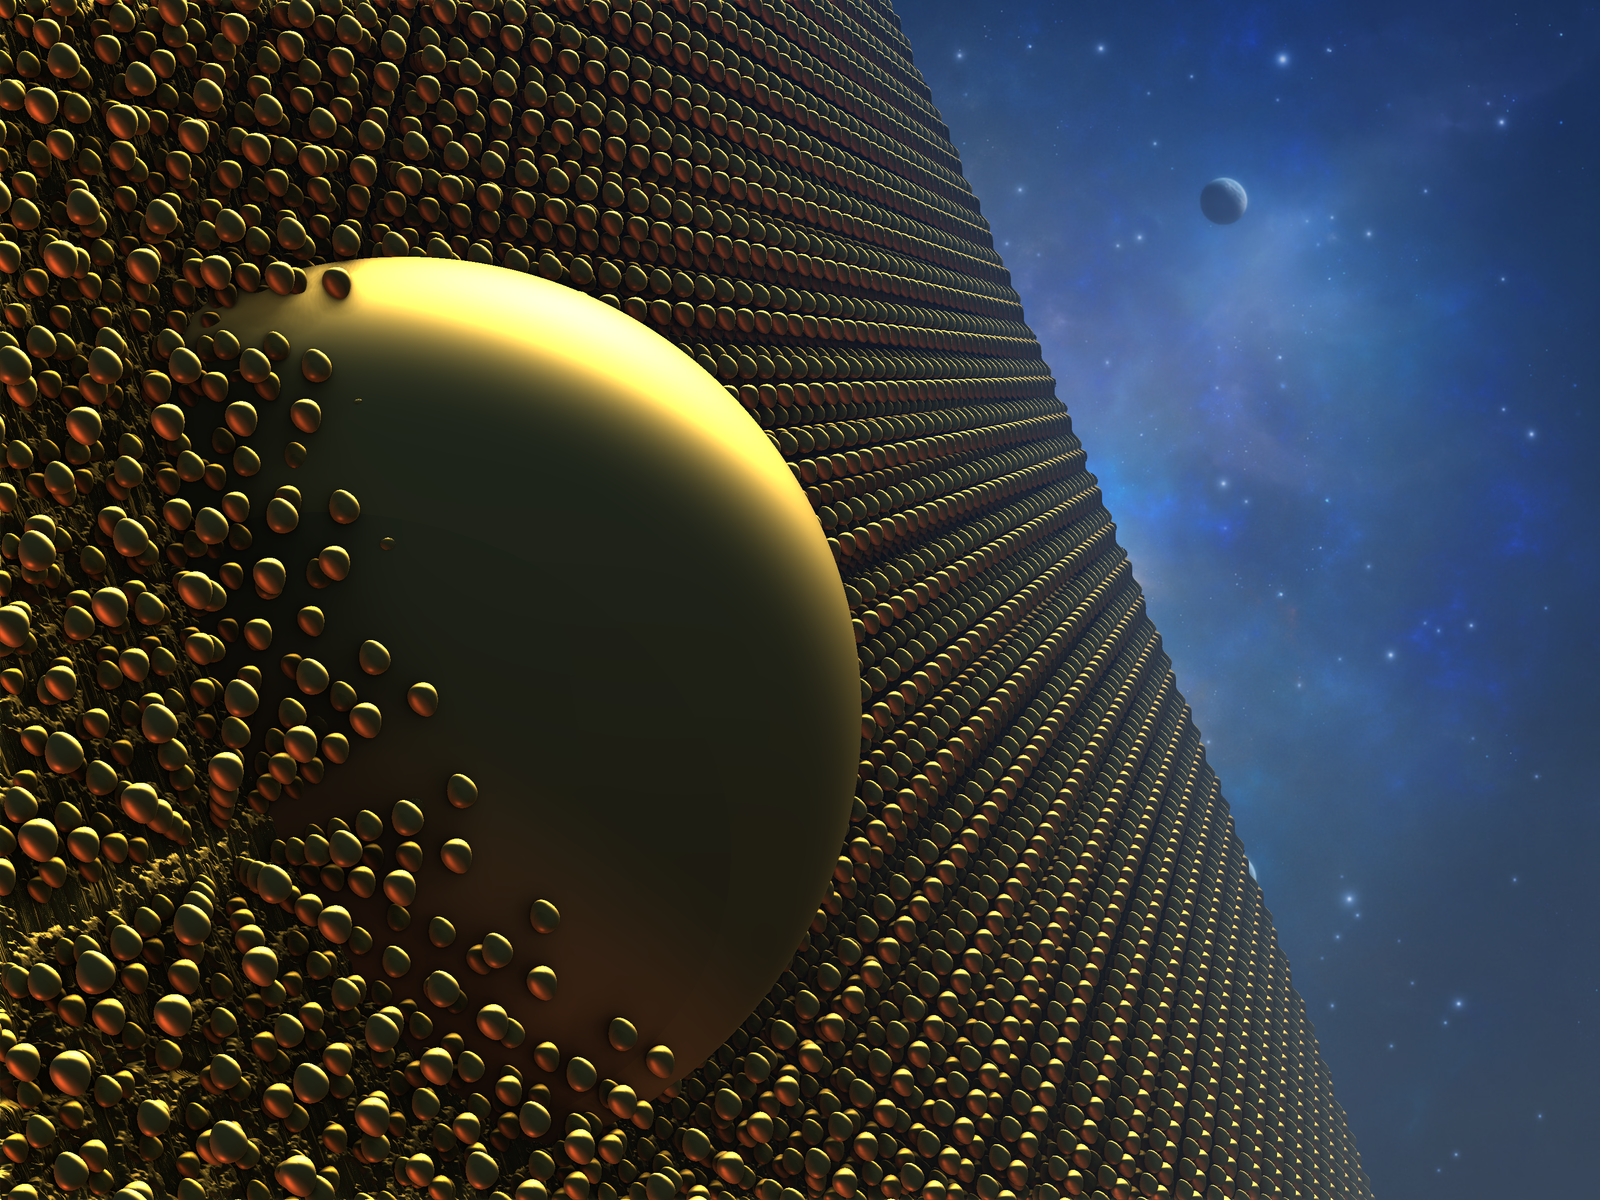 The Fractal Space Station by Jakeukalane on DeviantArt  Fractals In Space